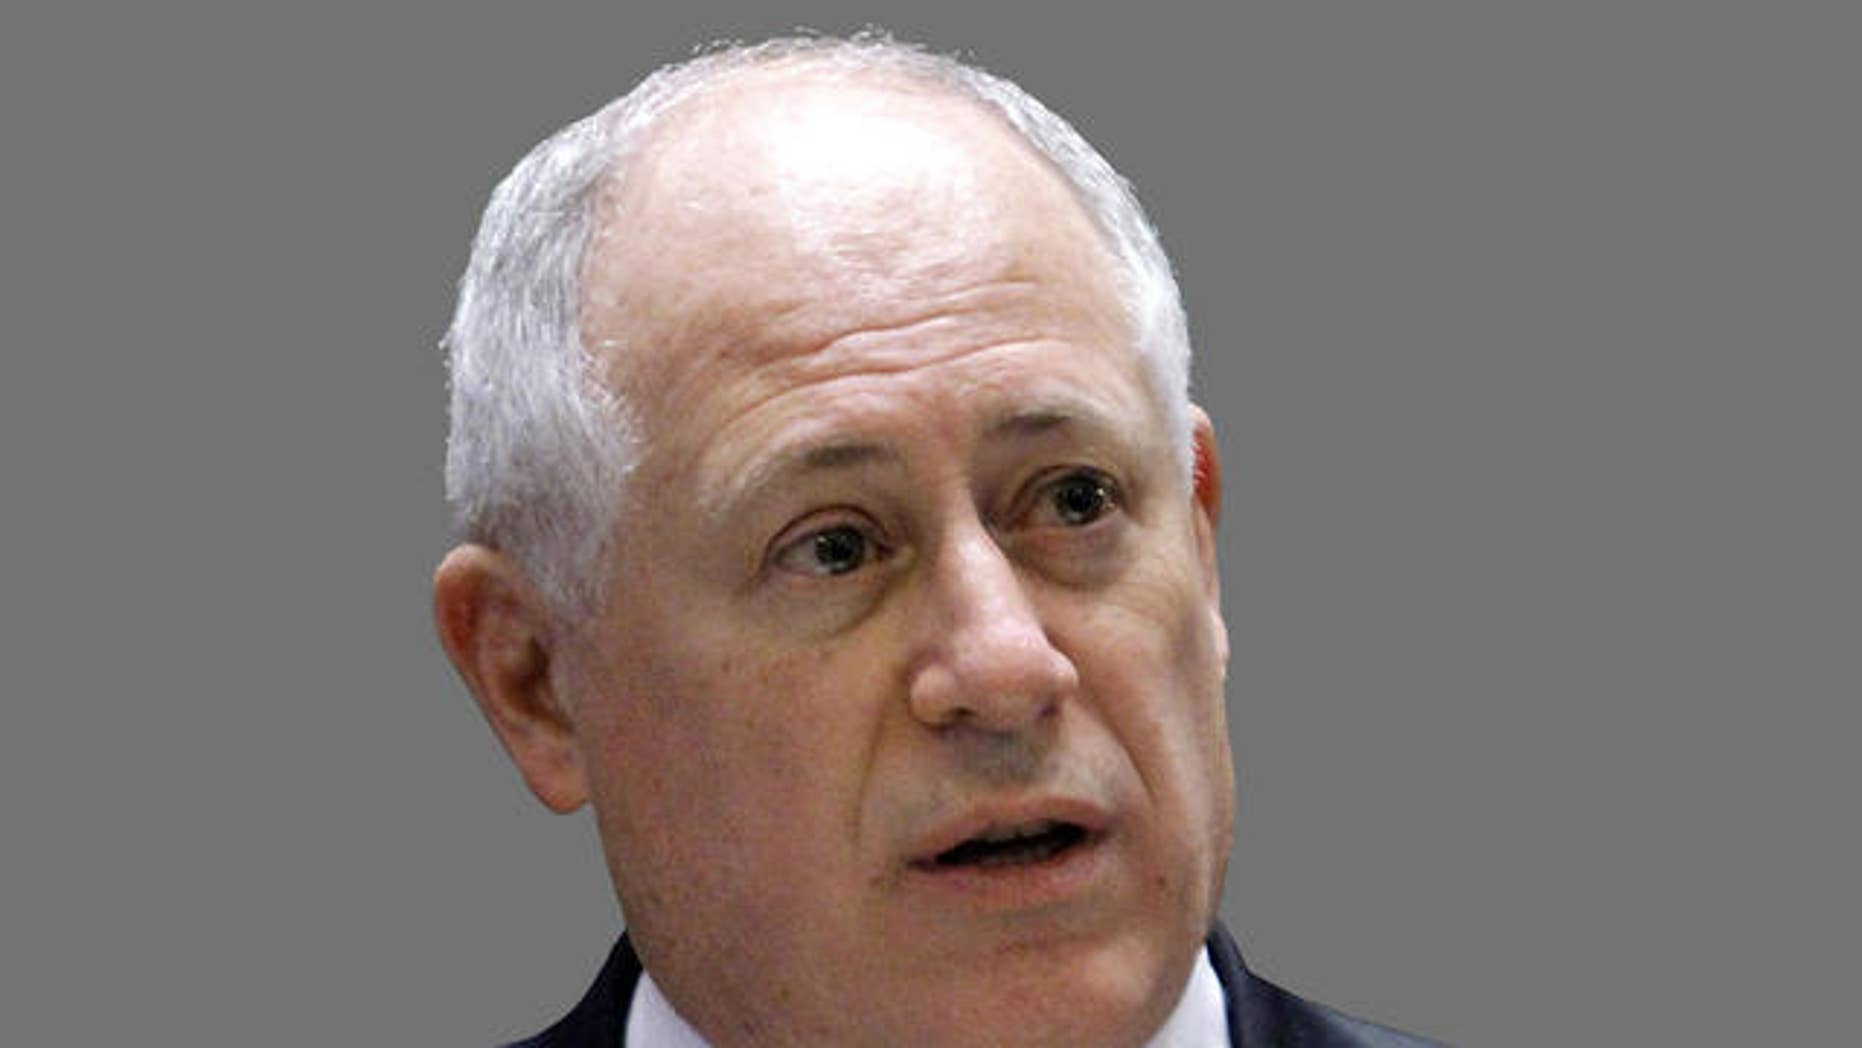 Illinois Gov. Pat Quinn has signed a law that vacates the convictions for prostitution of victims of sex trafficking.